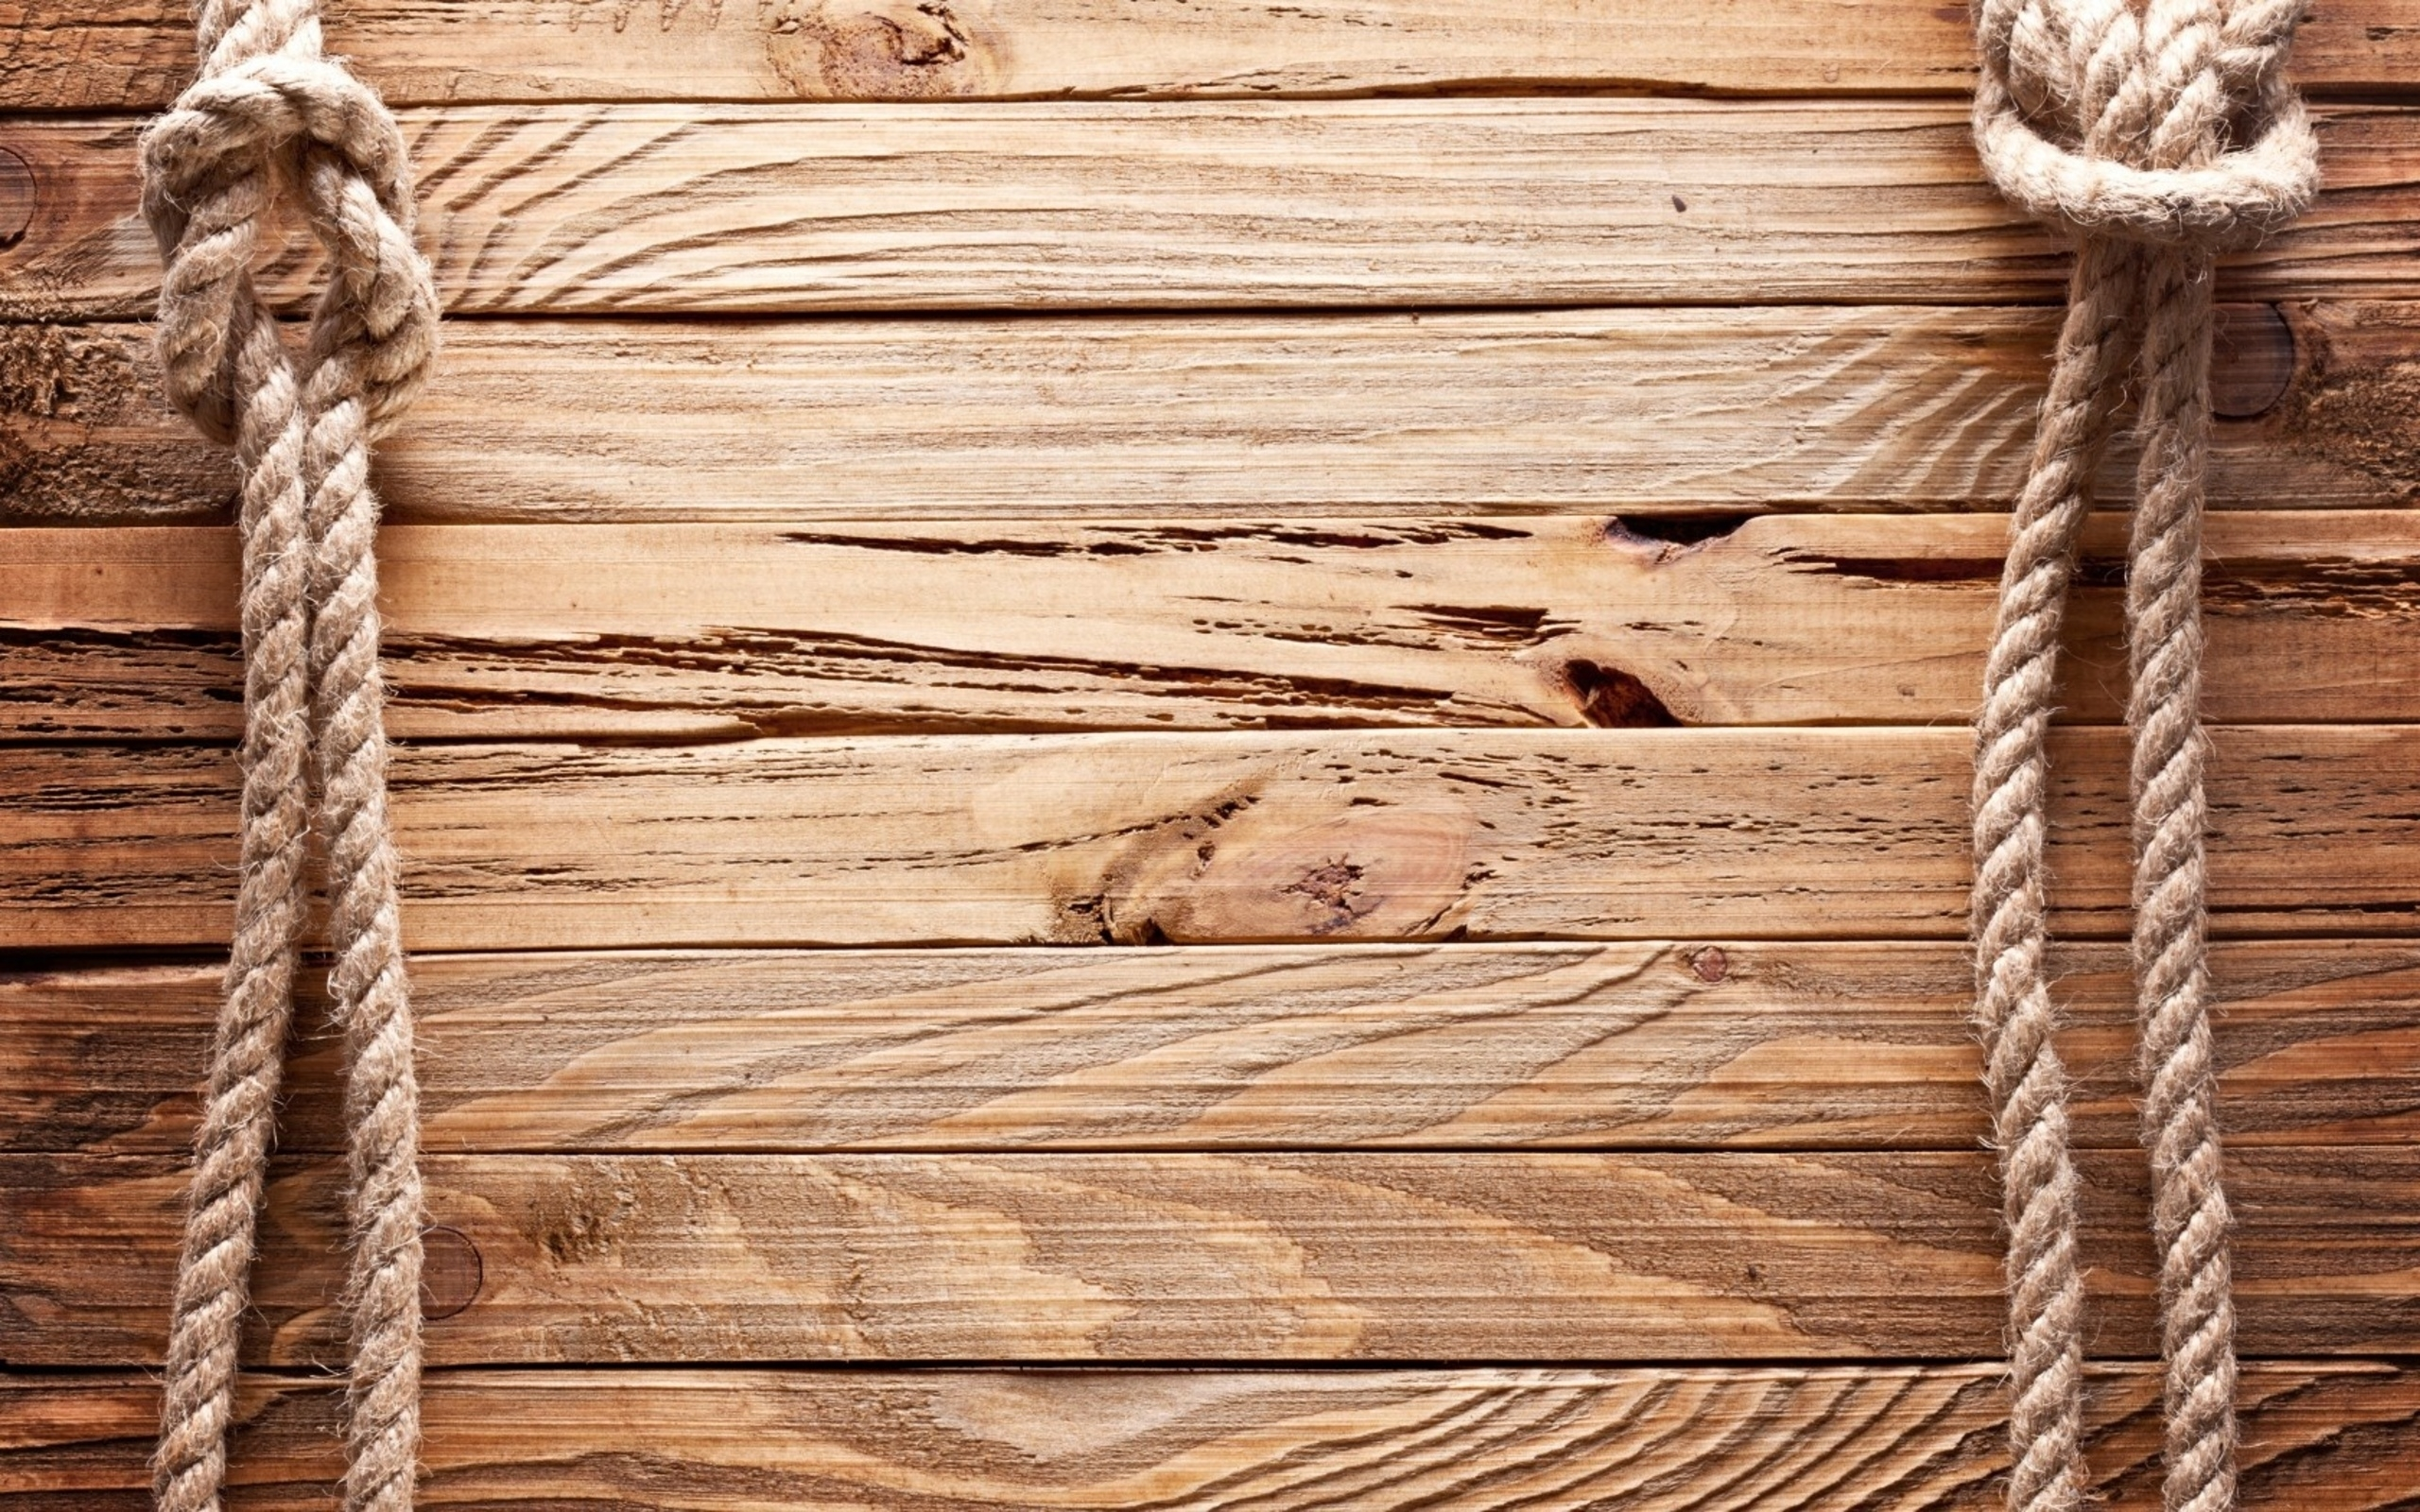 183 wood hd wallpapers | background images - wallpaper abyss